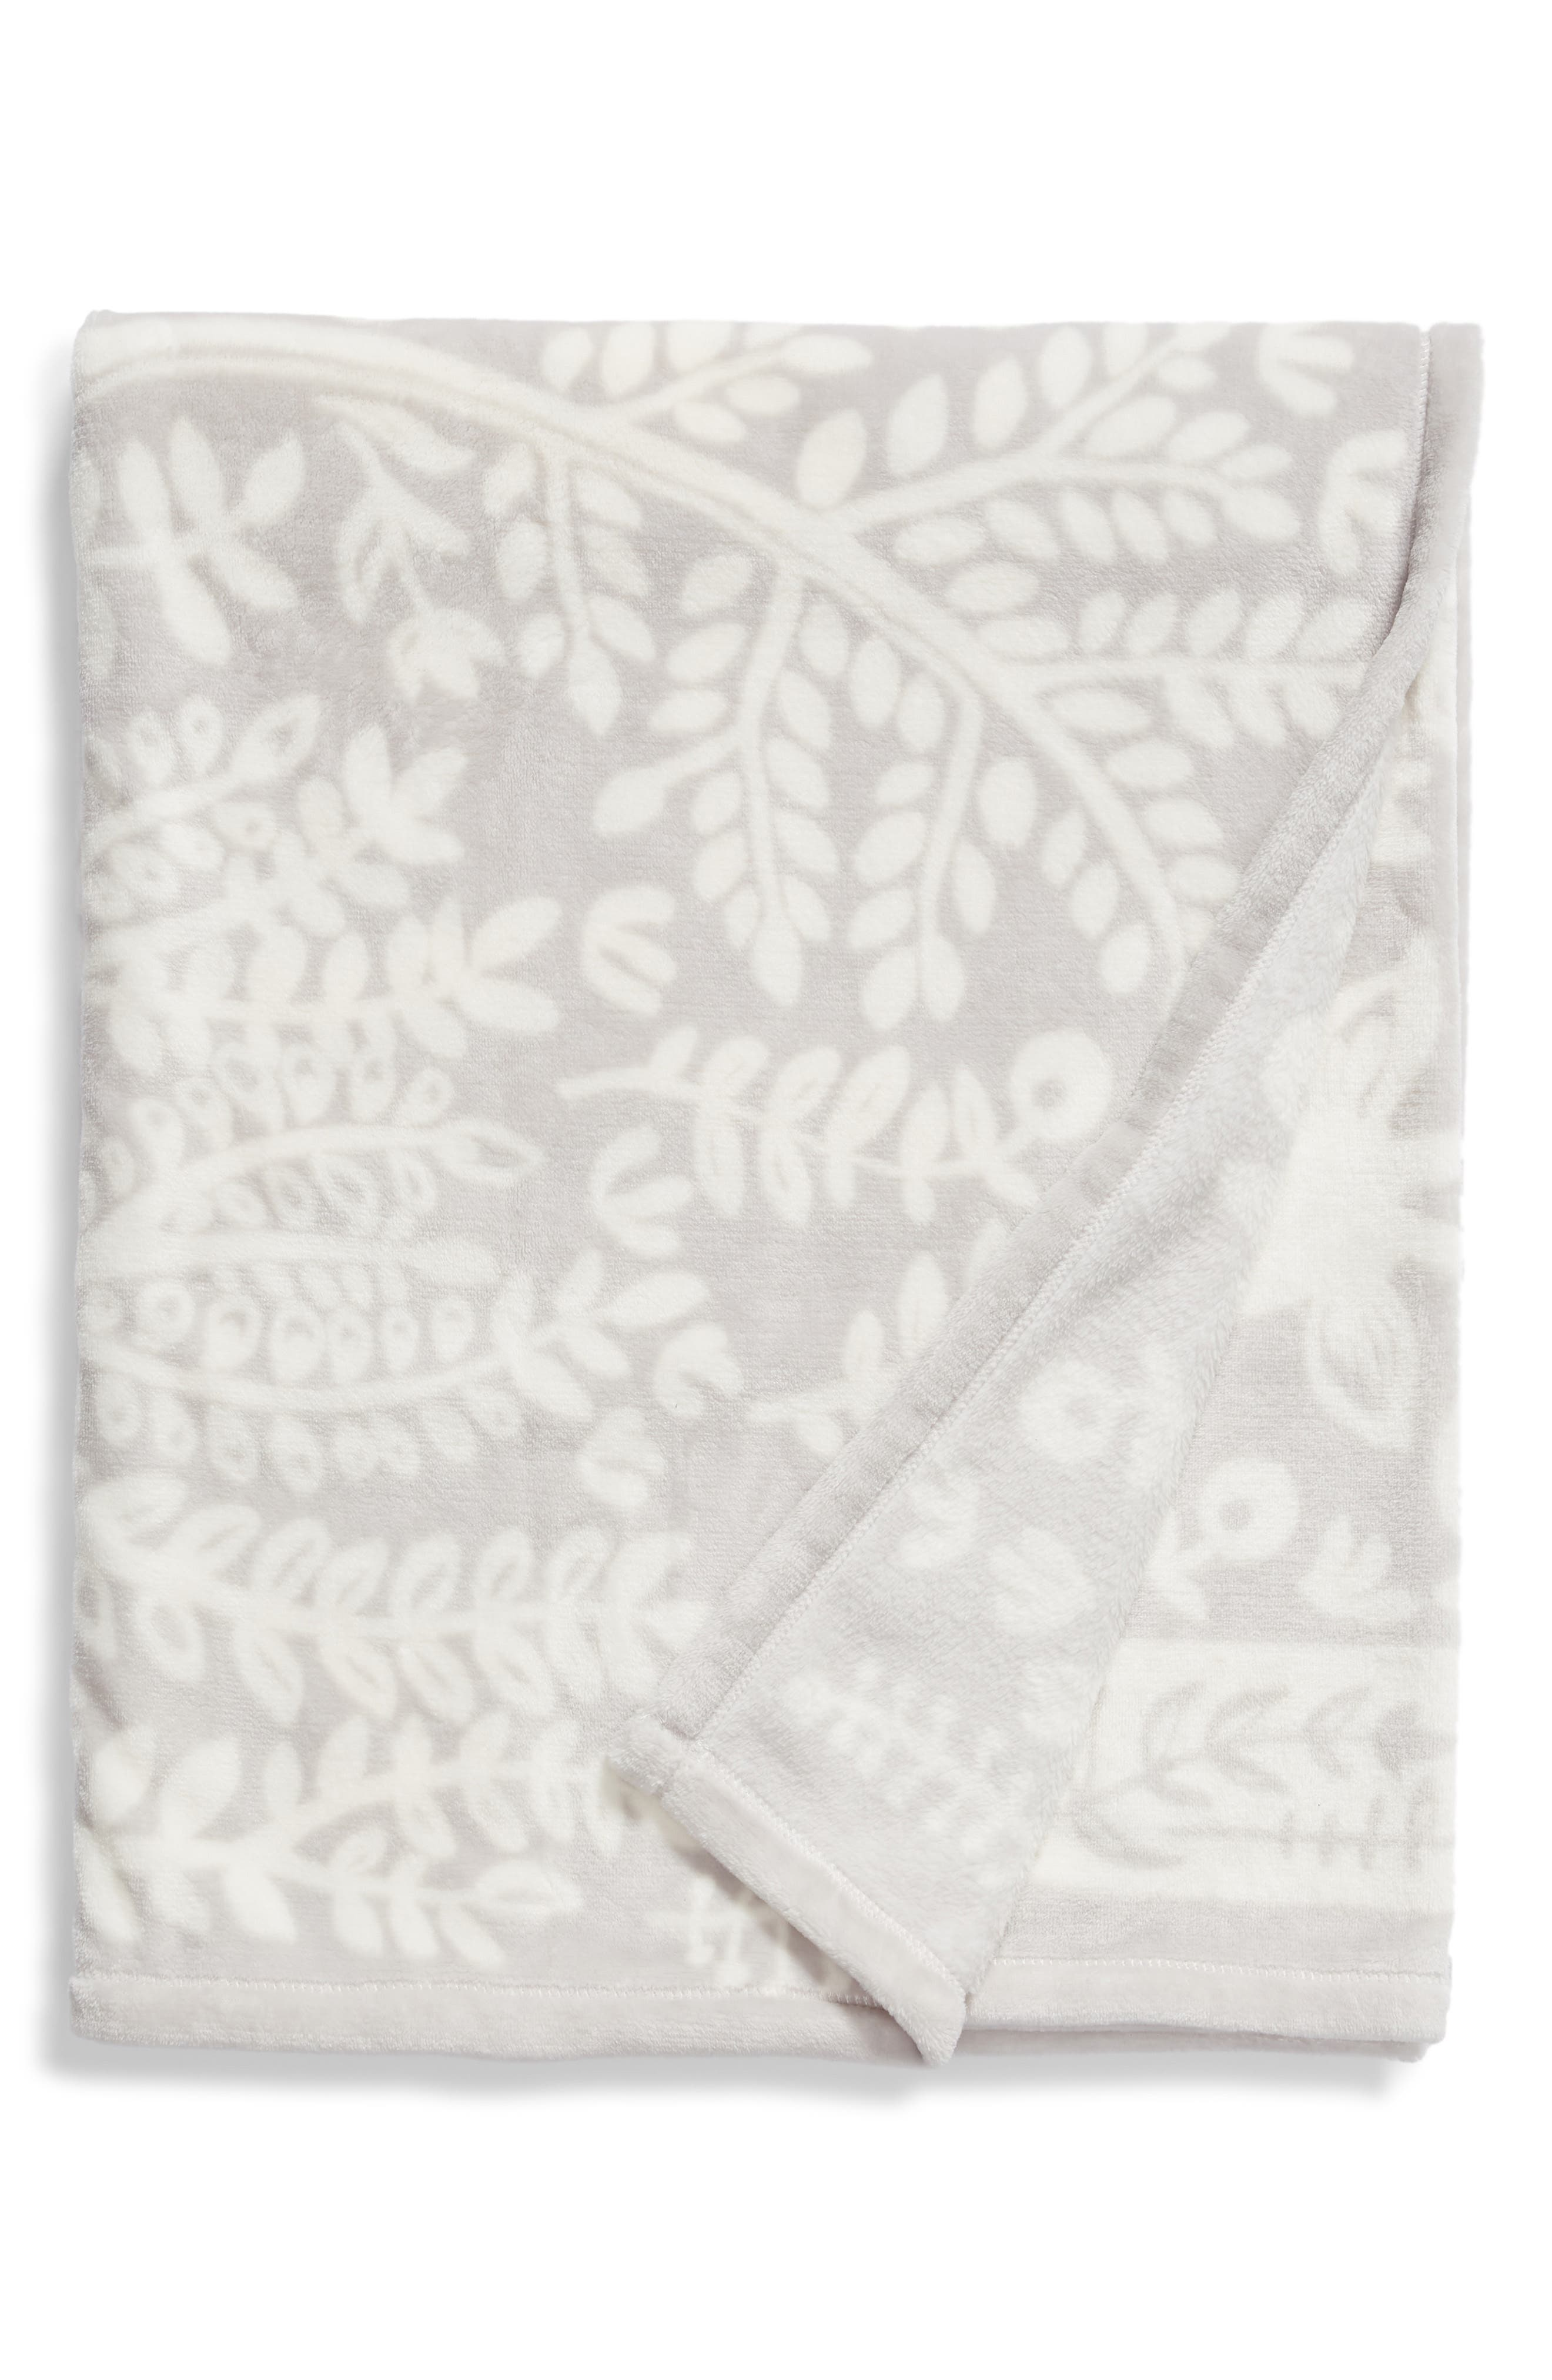 NORDSTROM AT HOME Winter Woods Plush Throw, Main, color, 021